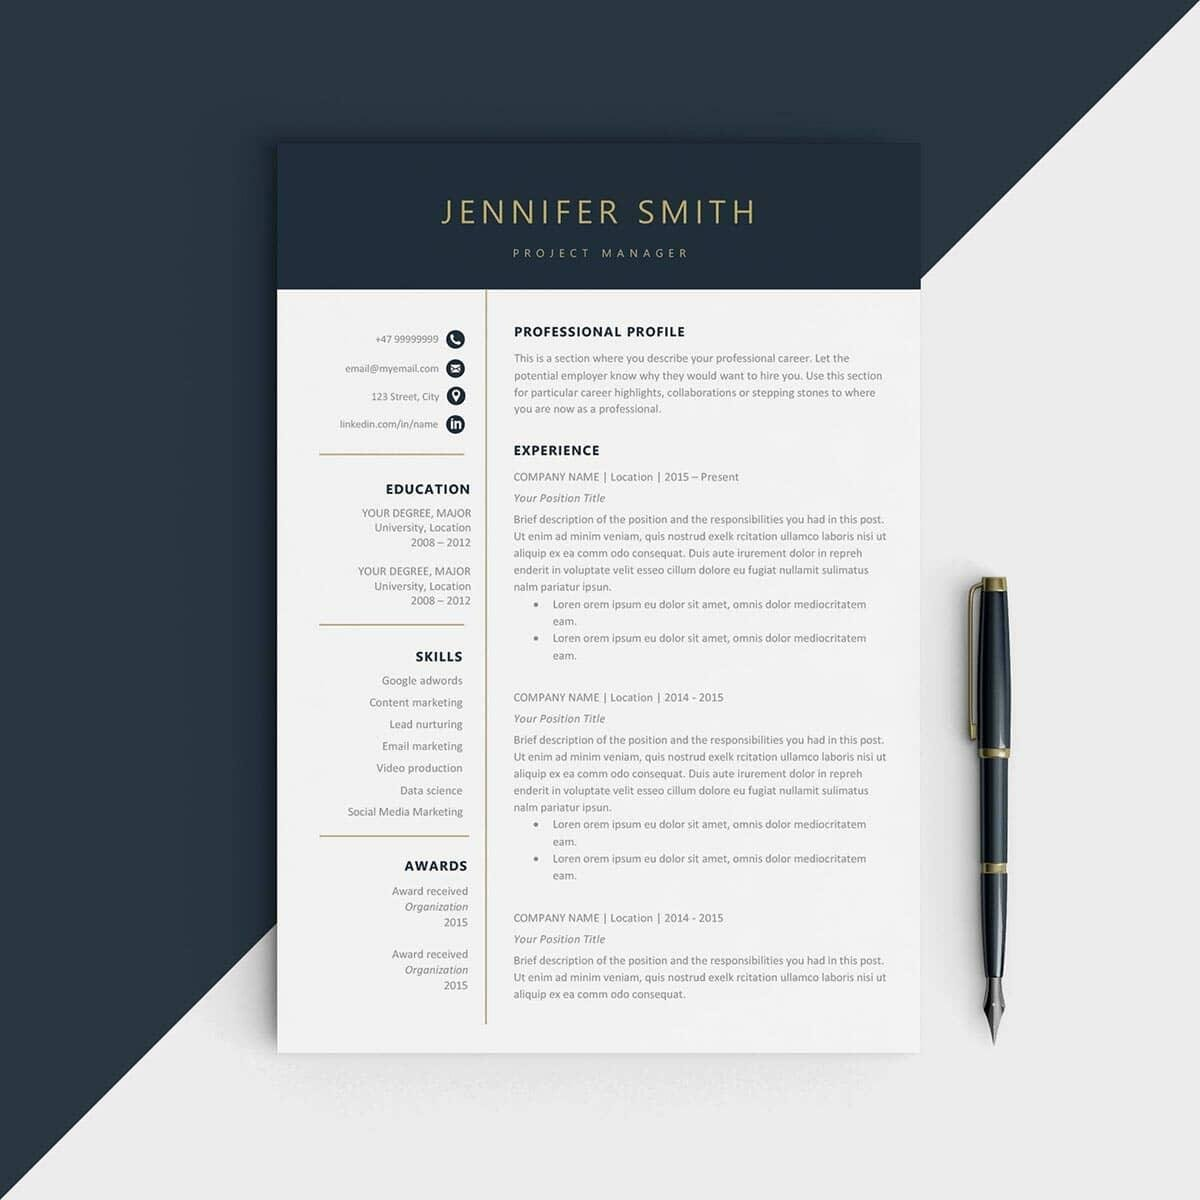 Photo Resume Templates Professional Cv Formats: Best Resume Templates: 15 Examples To Download & Use Right Away